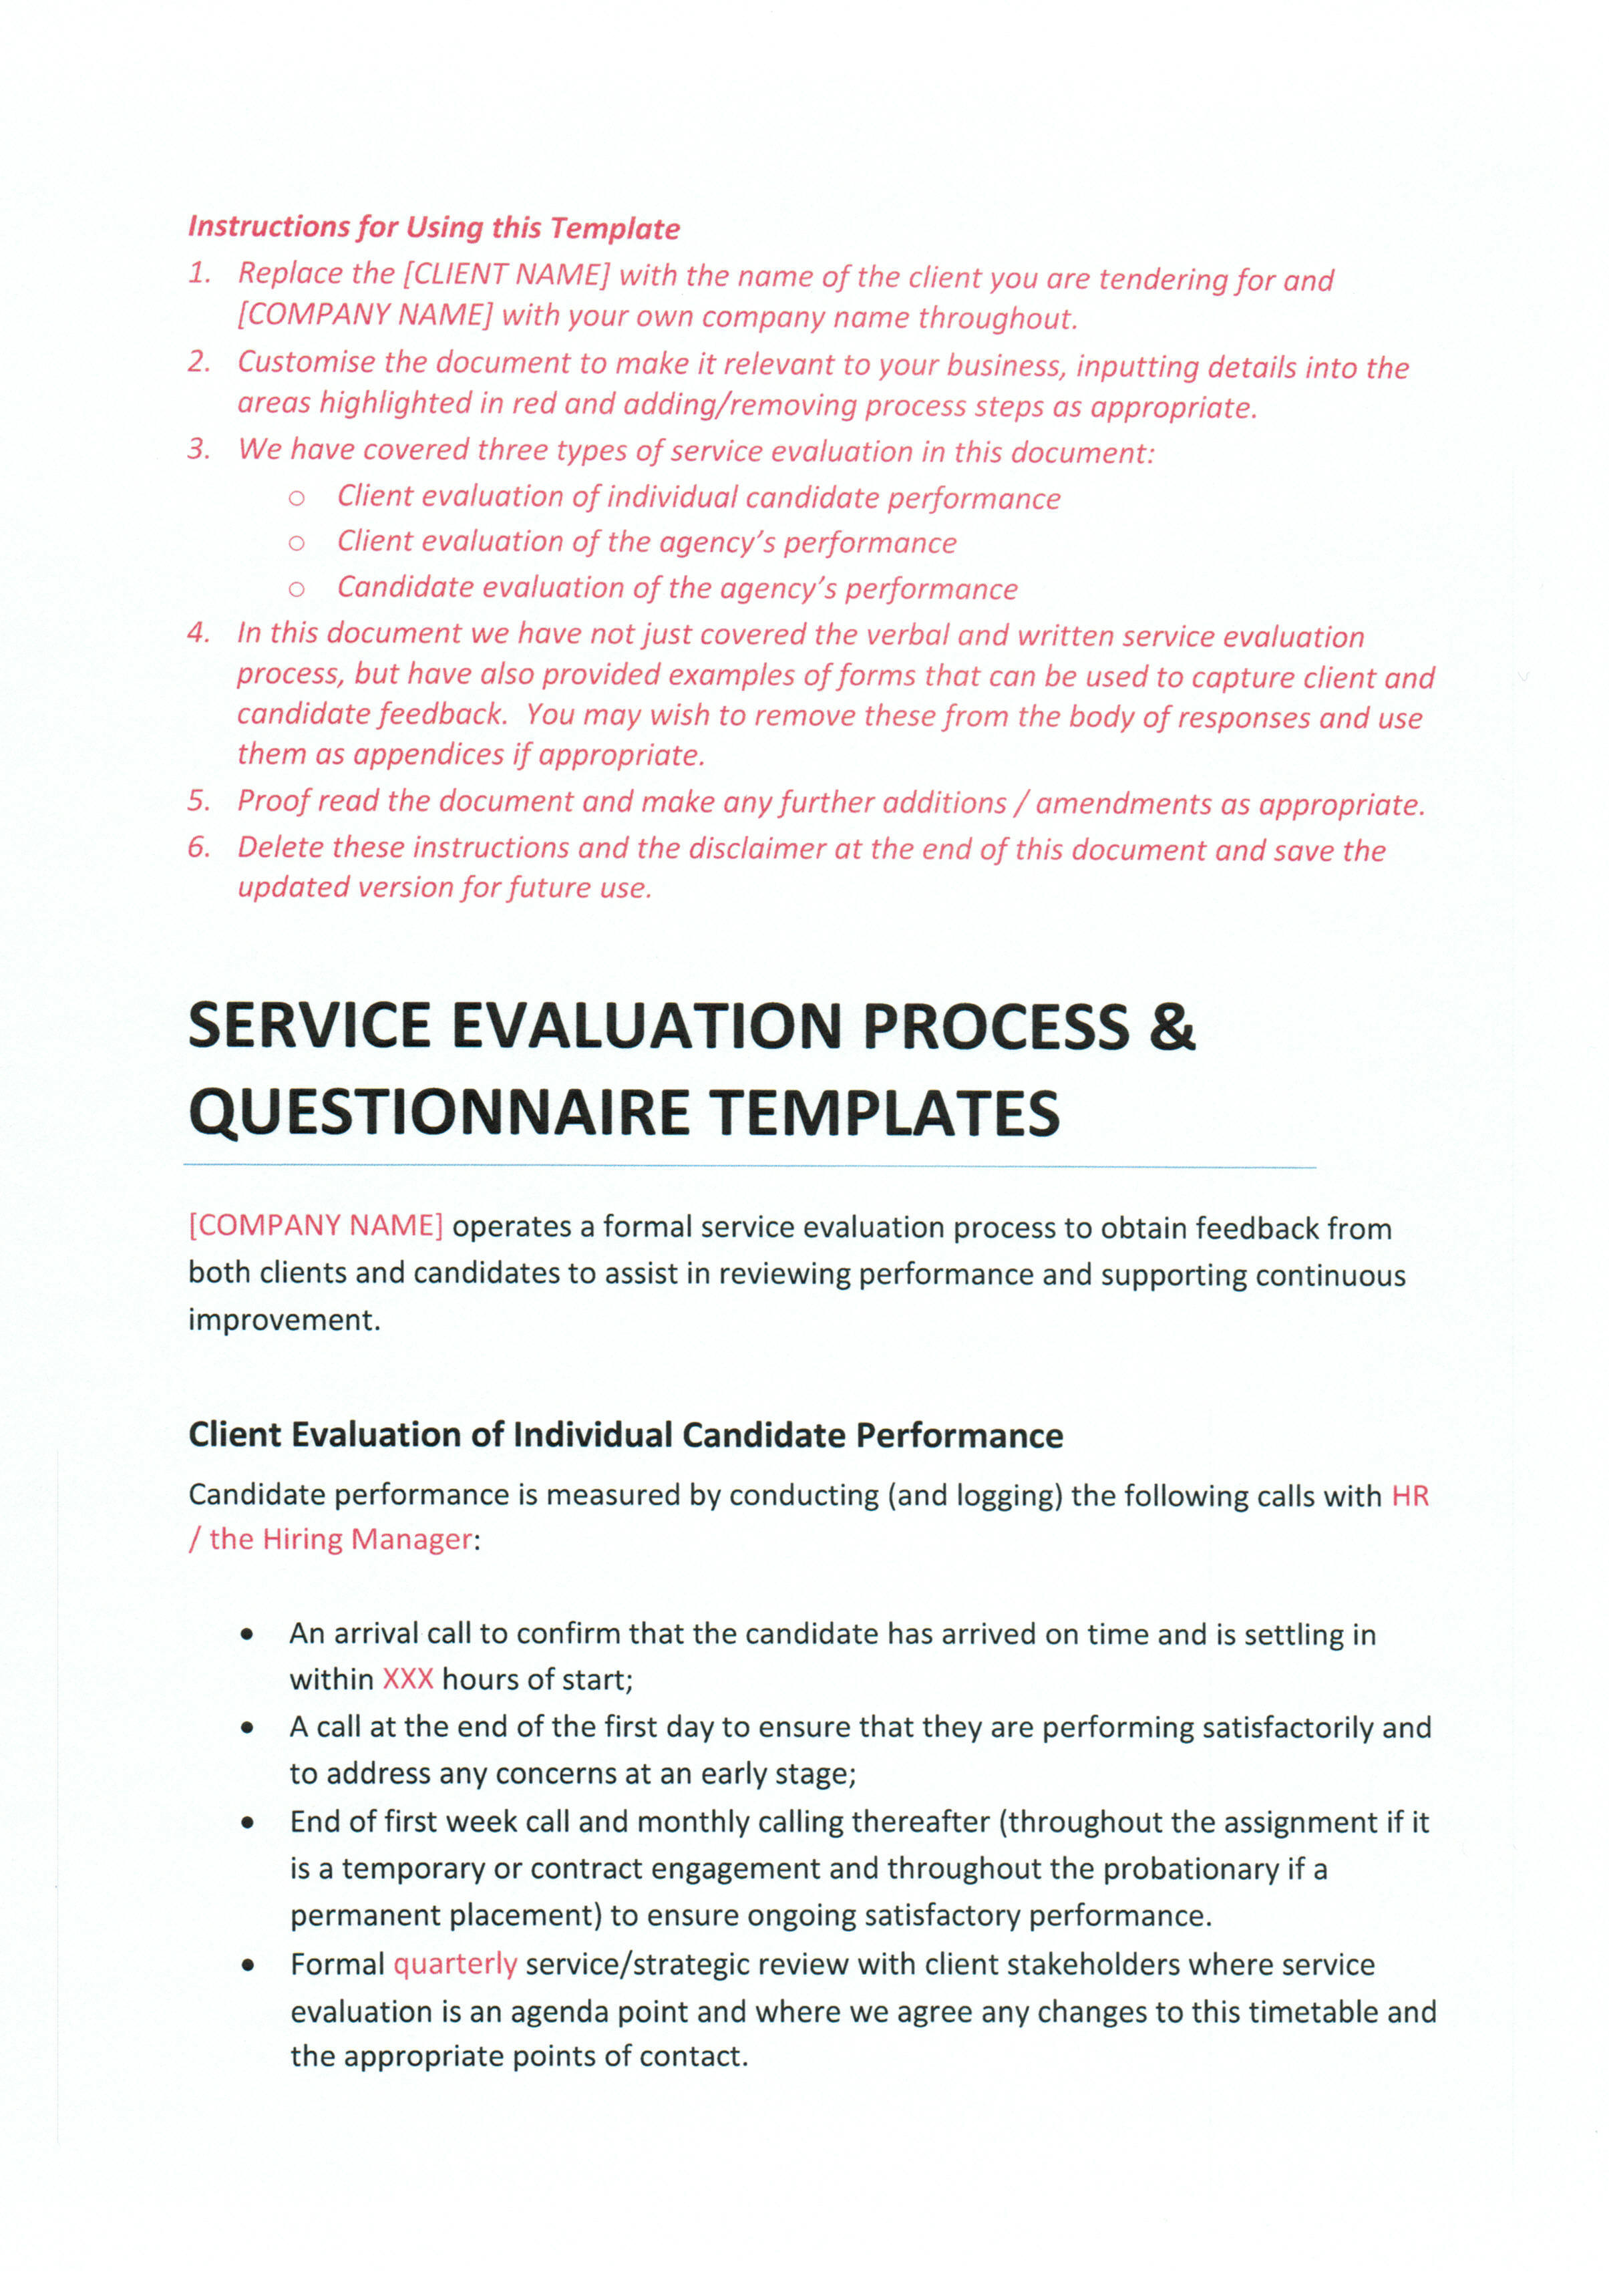 004 Health Care Essay Serviceevaluation Impressive Universal Introduction Assignment Cost Access And Quality In English Full